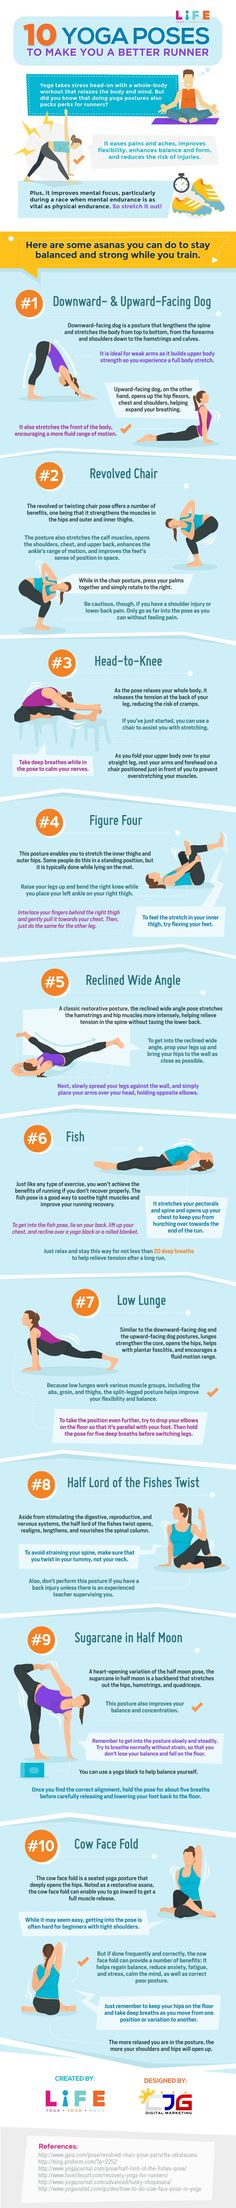 10 Yoga Poses to Make You a Better Runner